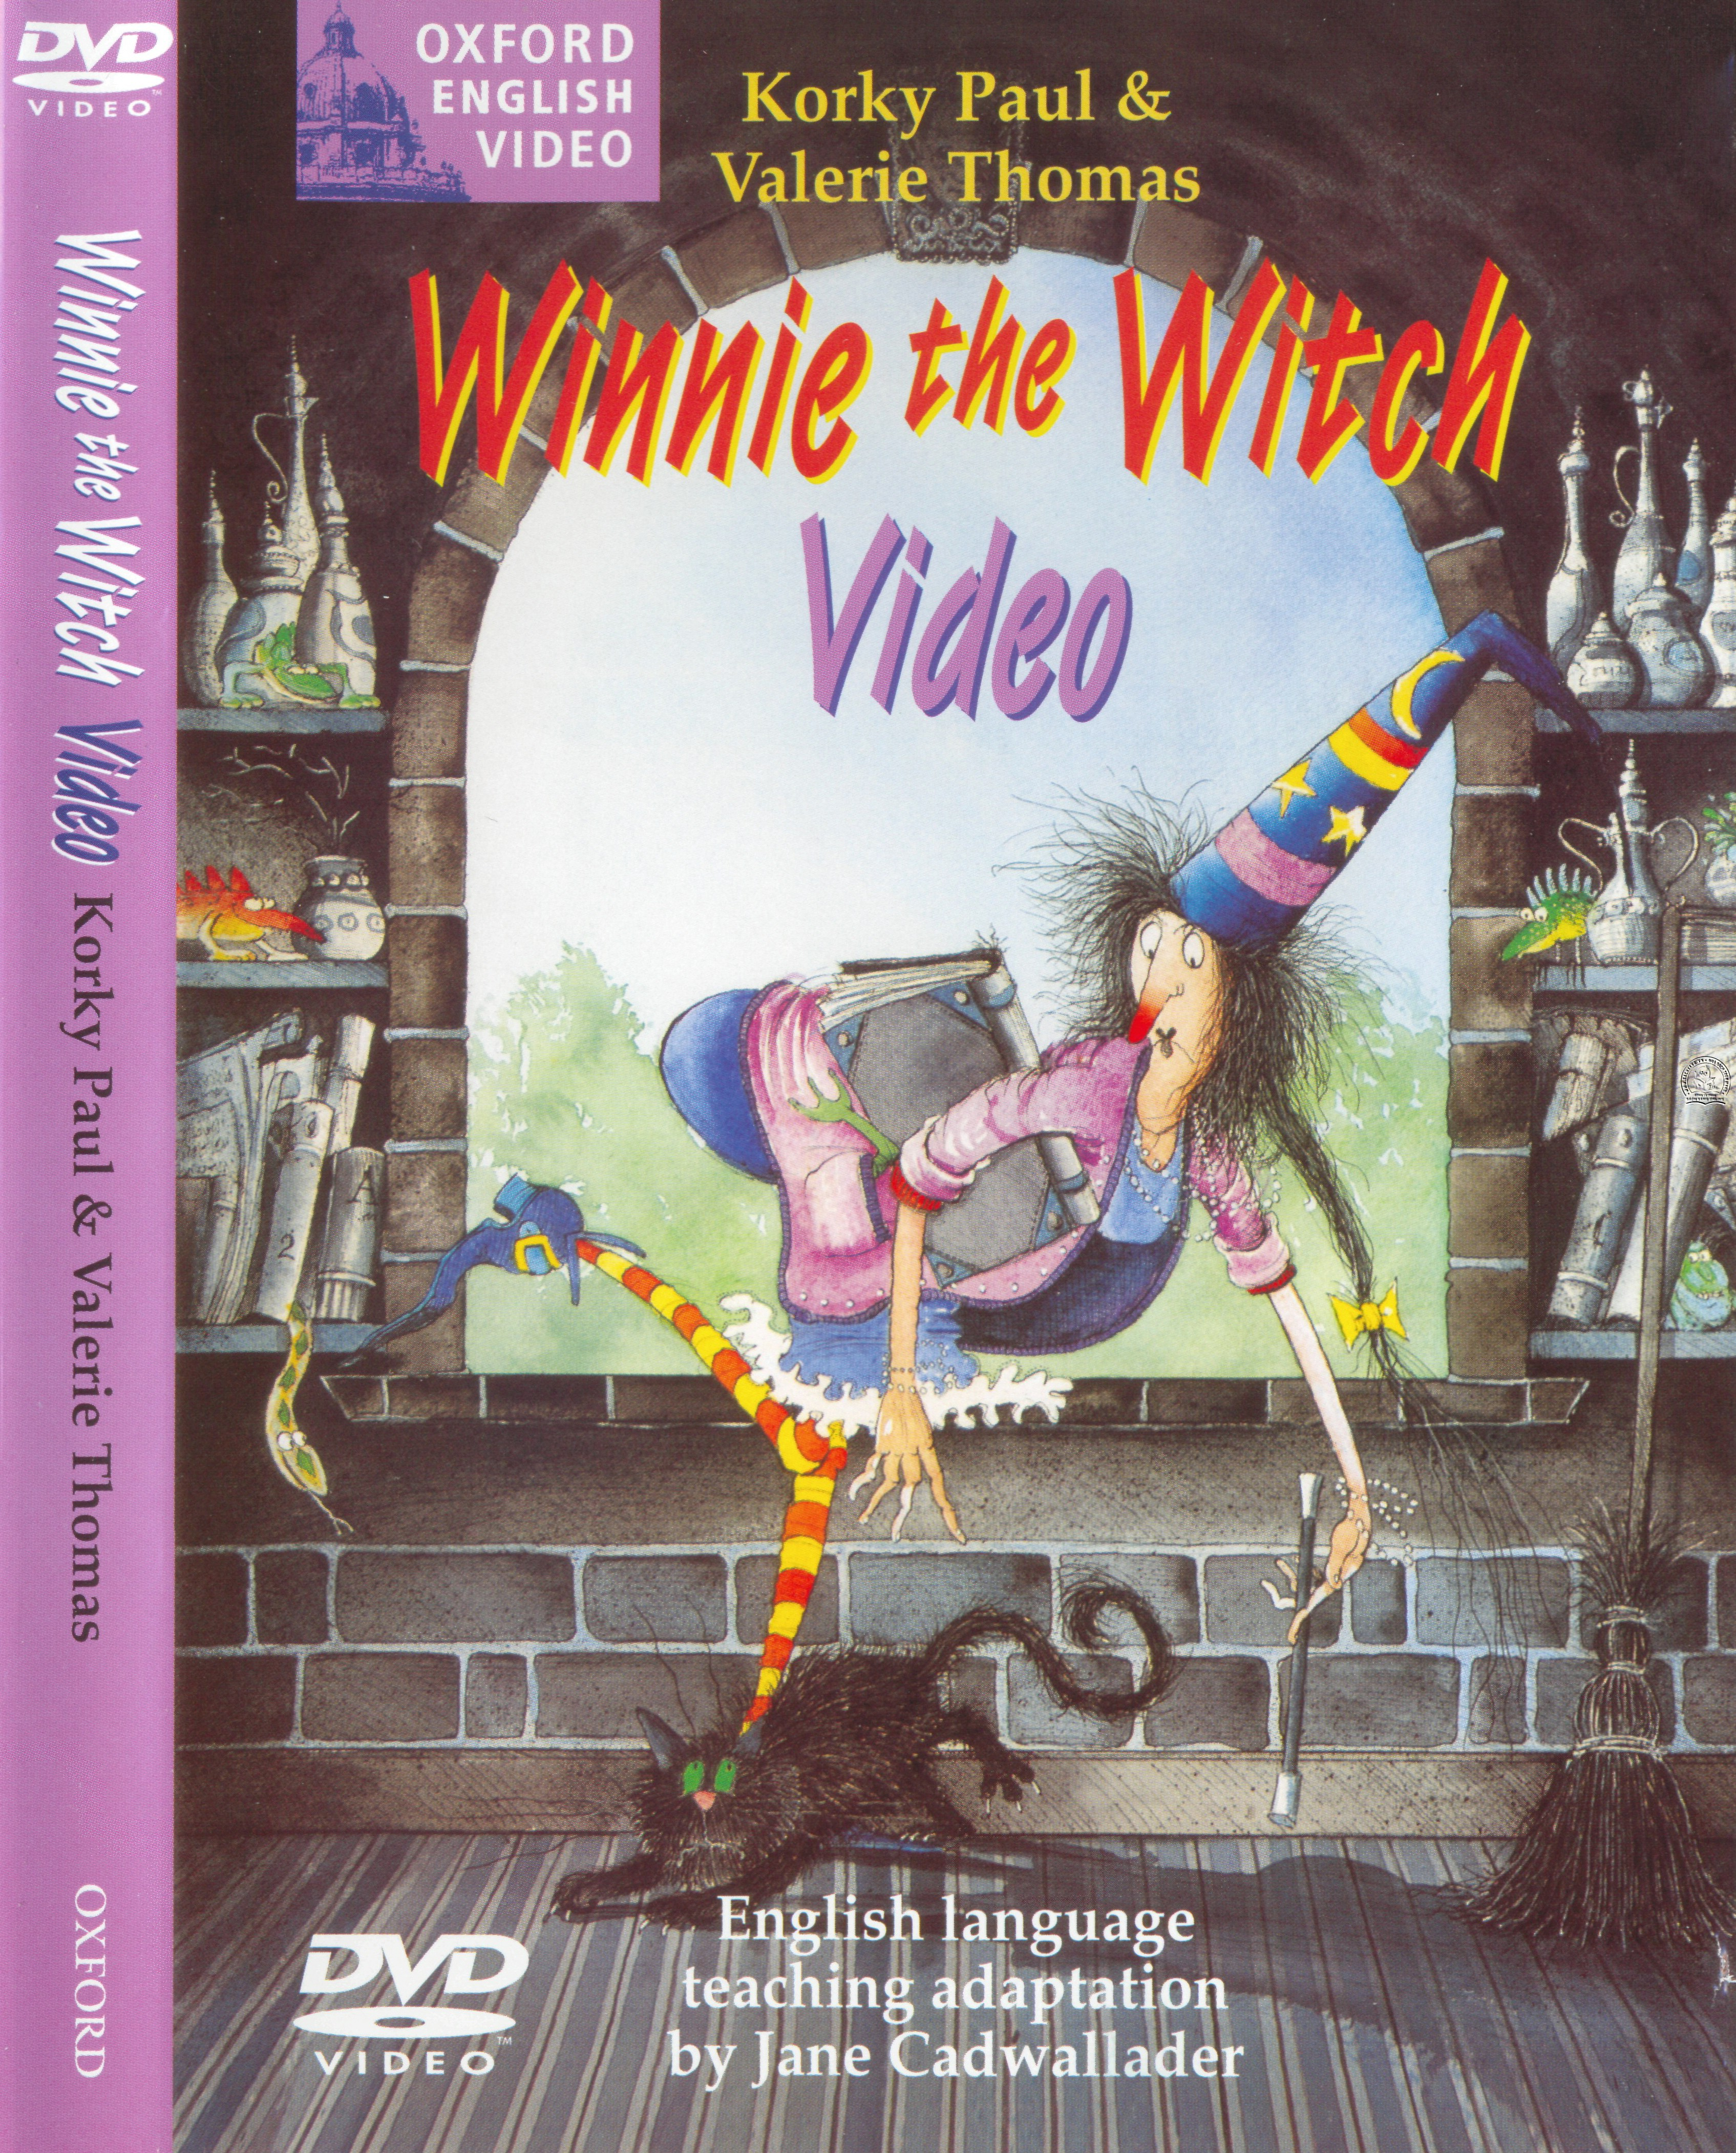 Oxford University Press - Winnie The Witch